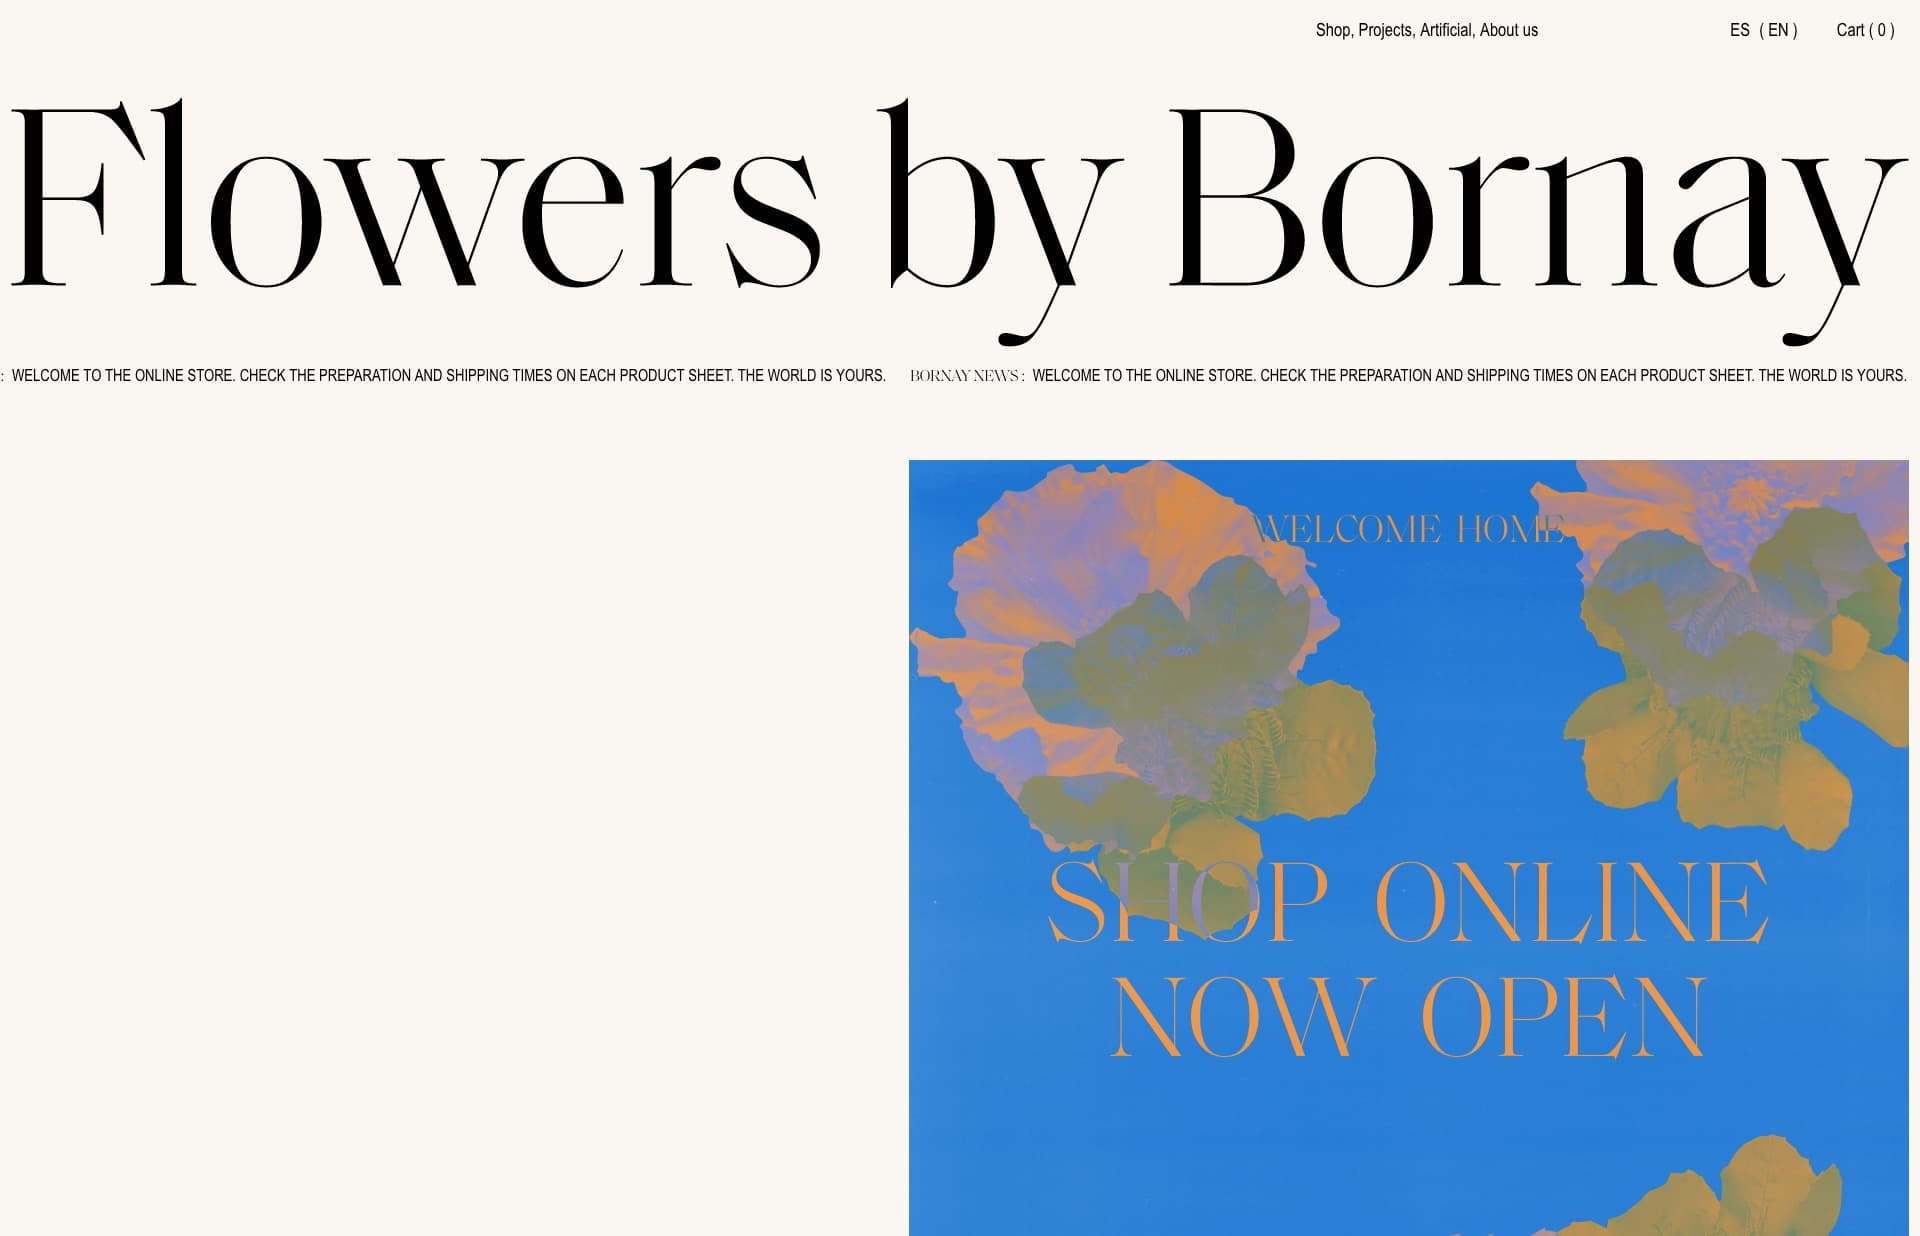 Screenshot of the website Flowers by Bornay, featured on The Gallery, a curated collection of minimal websites